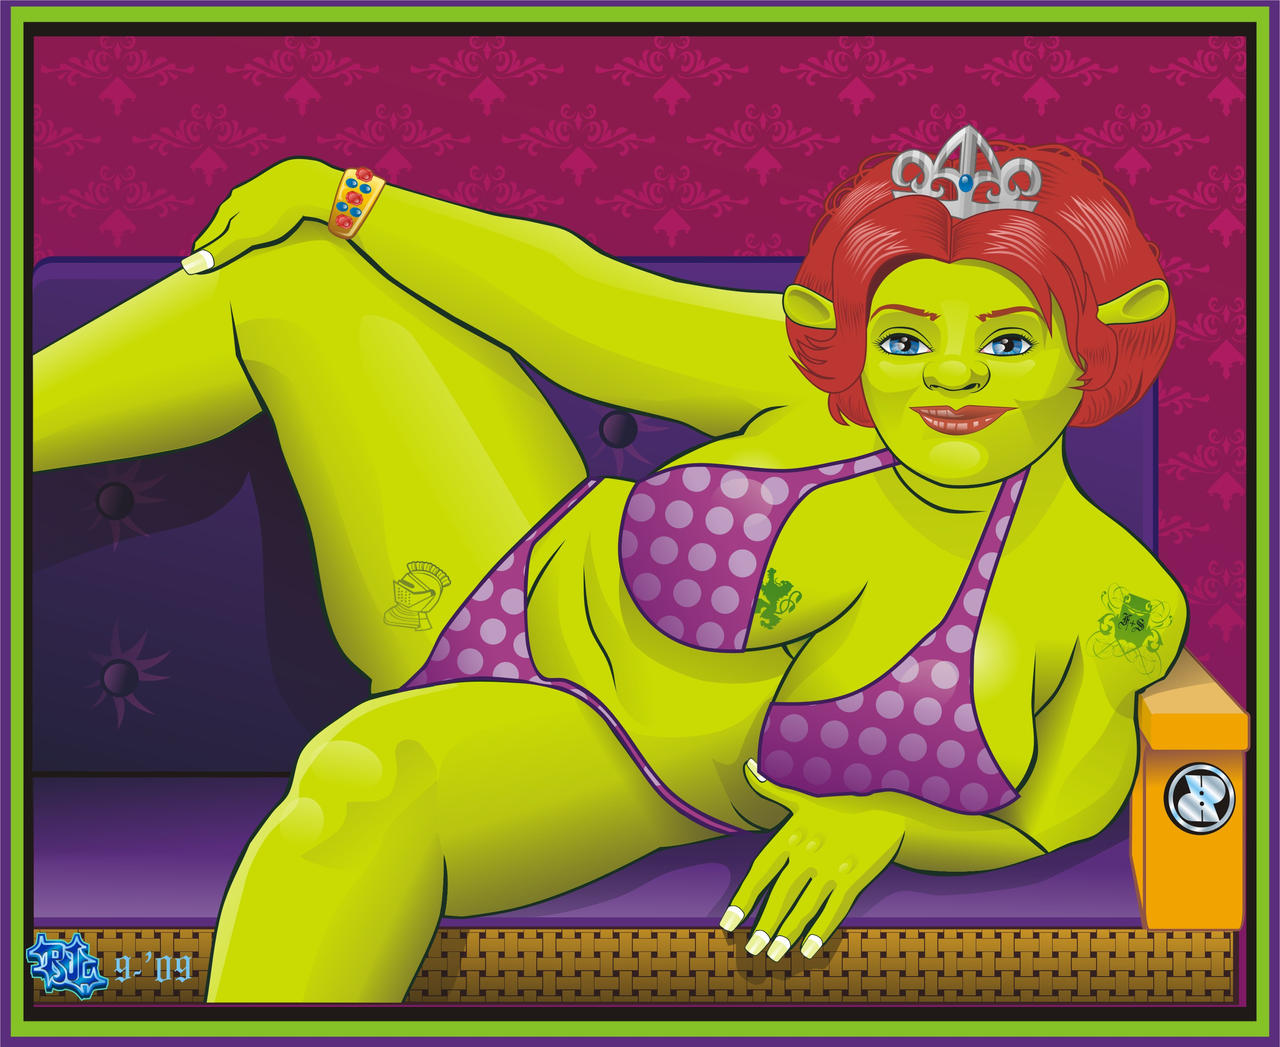 Xxx of sherk cartoon with fiona in  nude thumbs